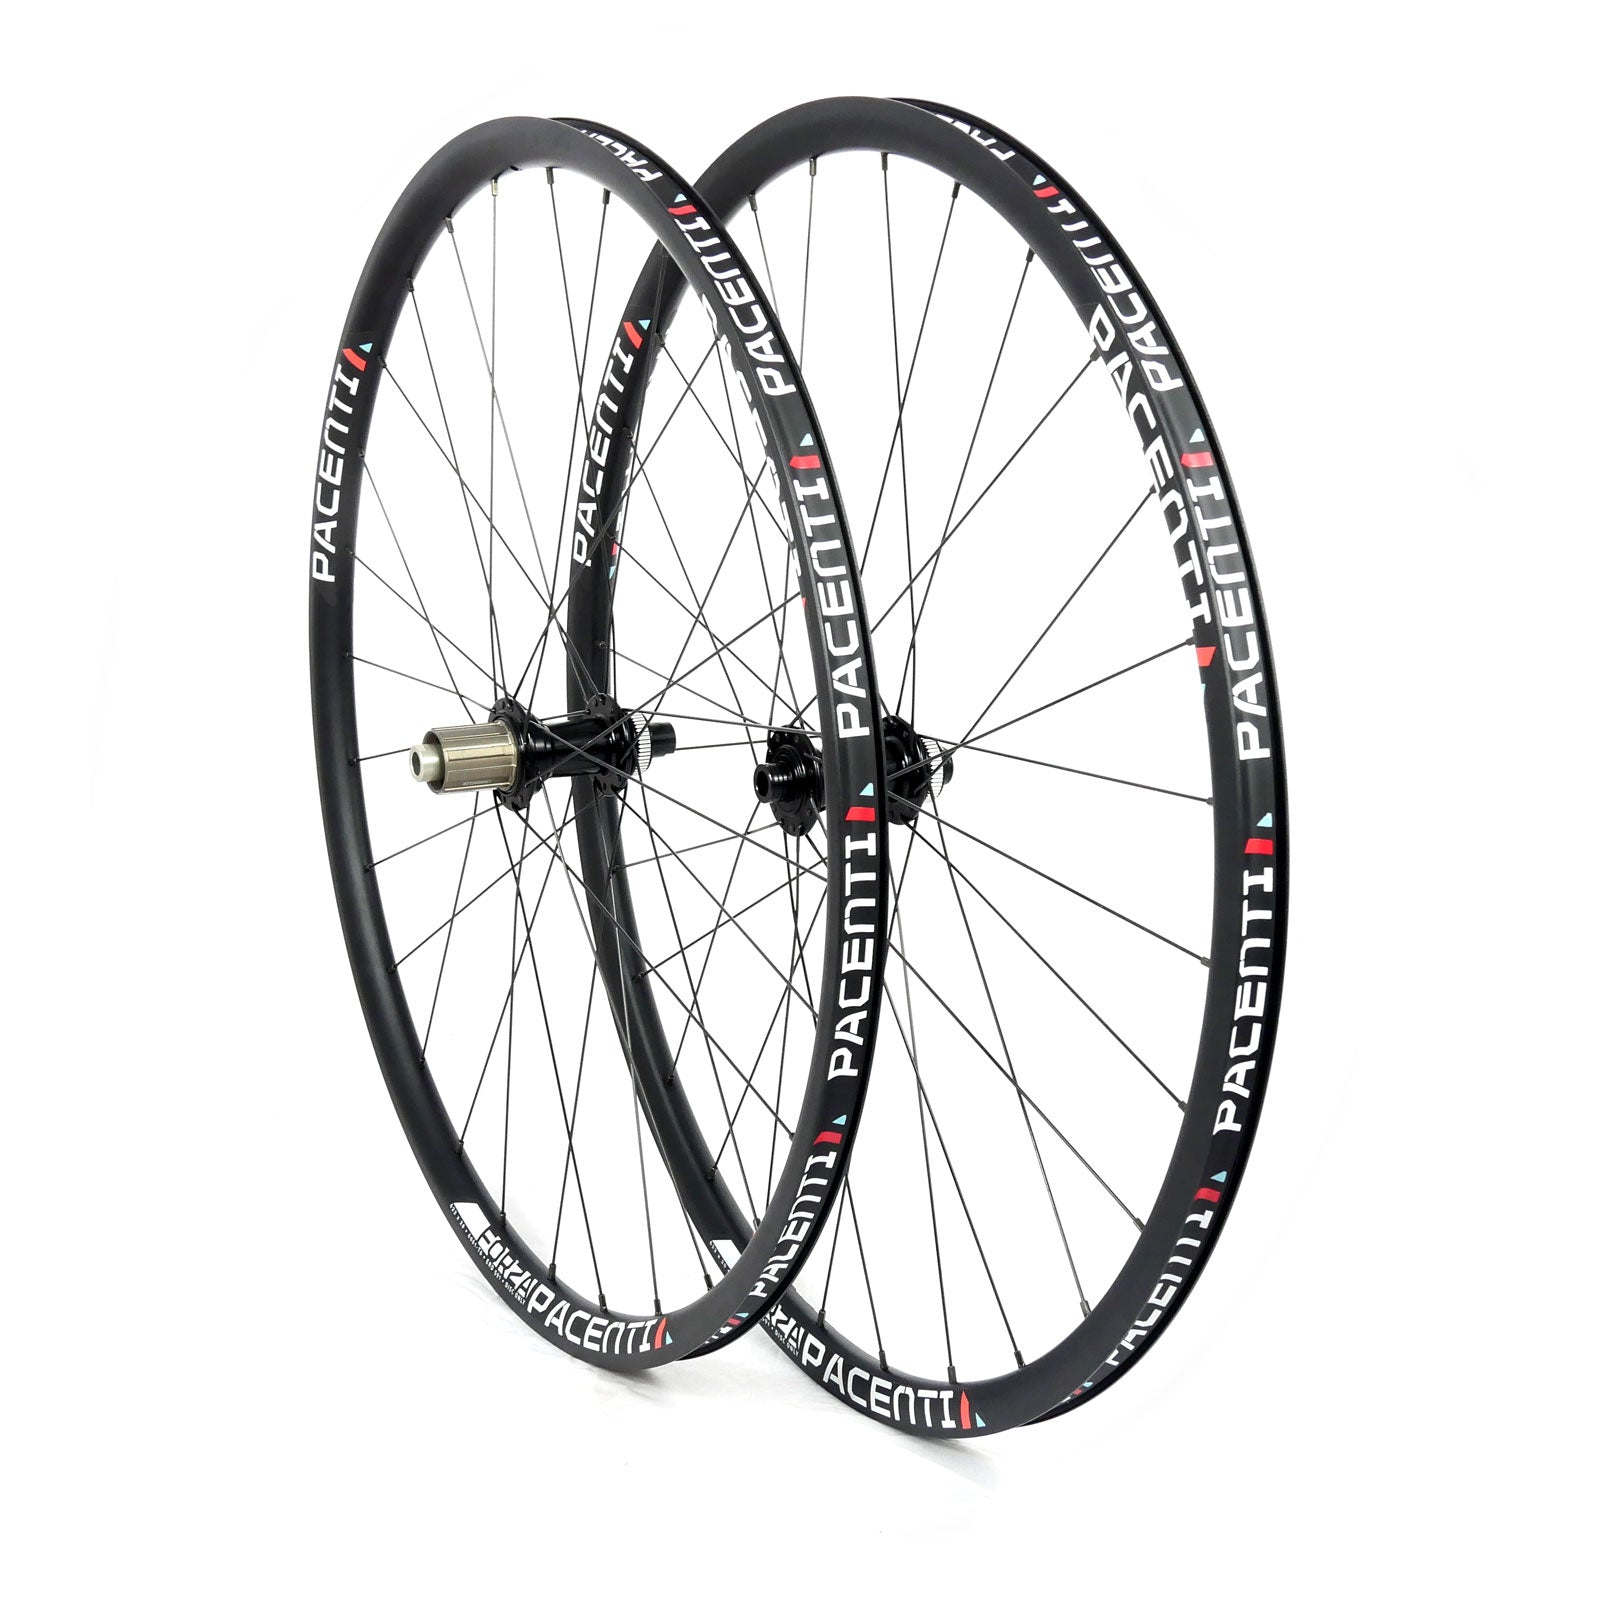 Forza wheelset centre-lock disc brake 27.5/650B 12mm